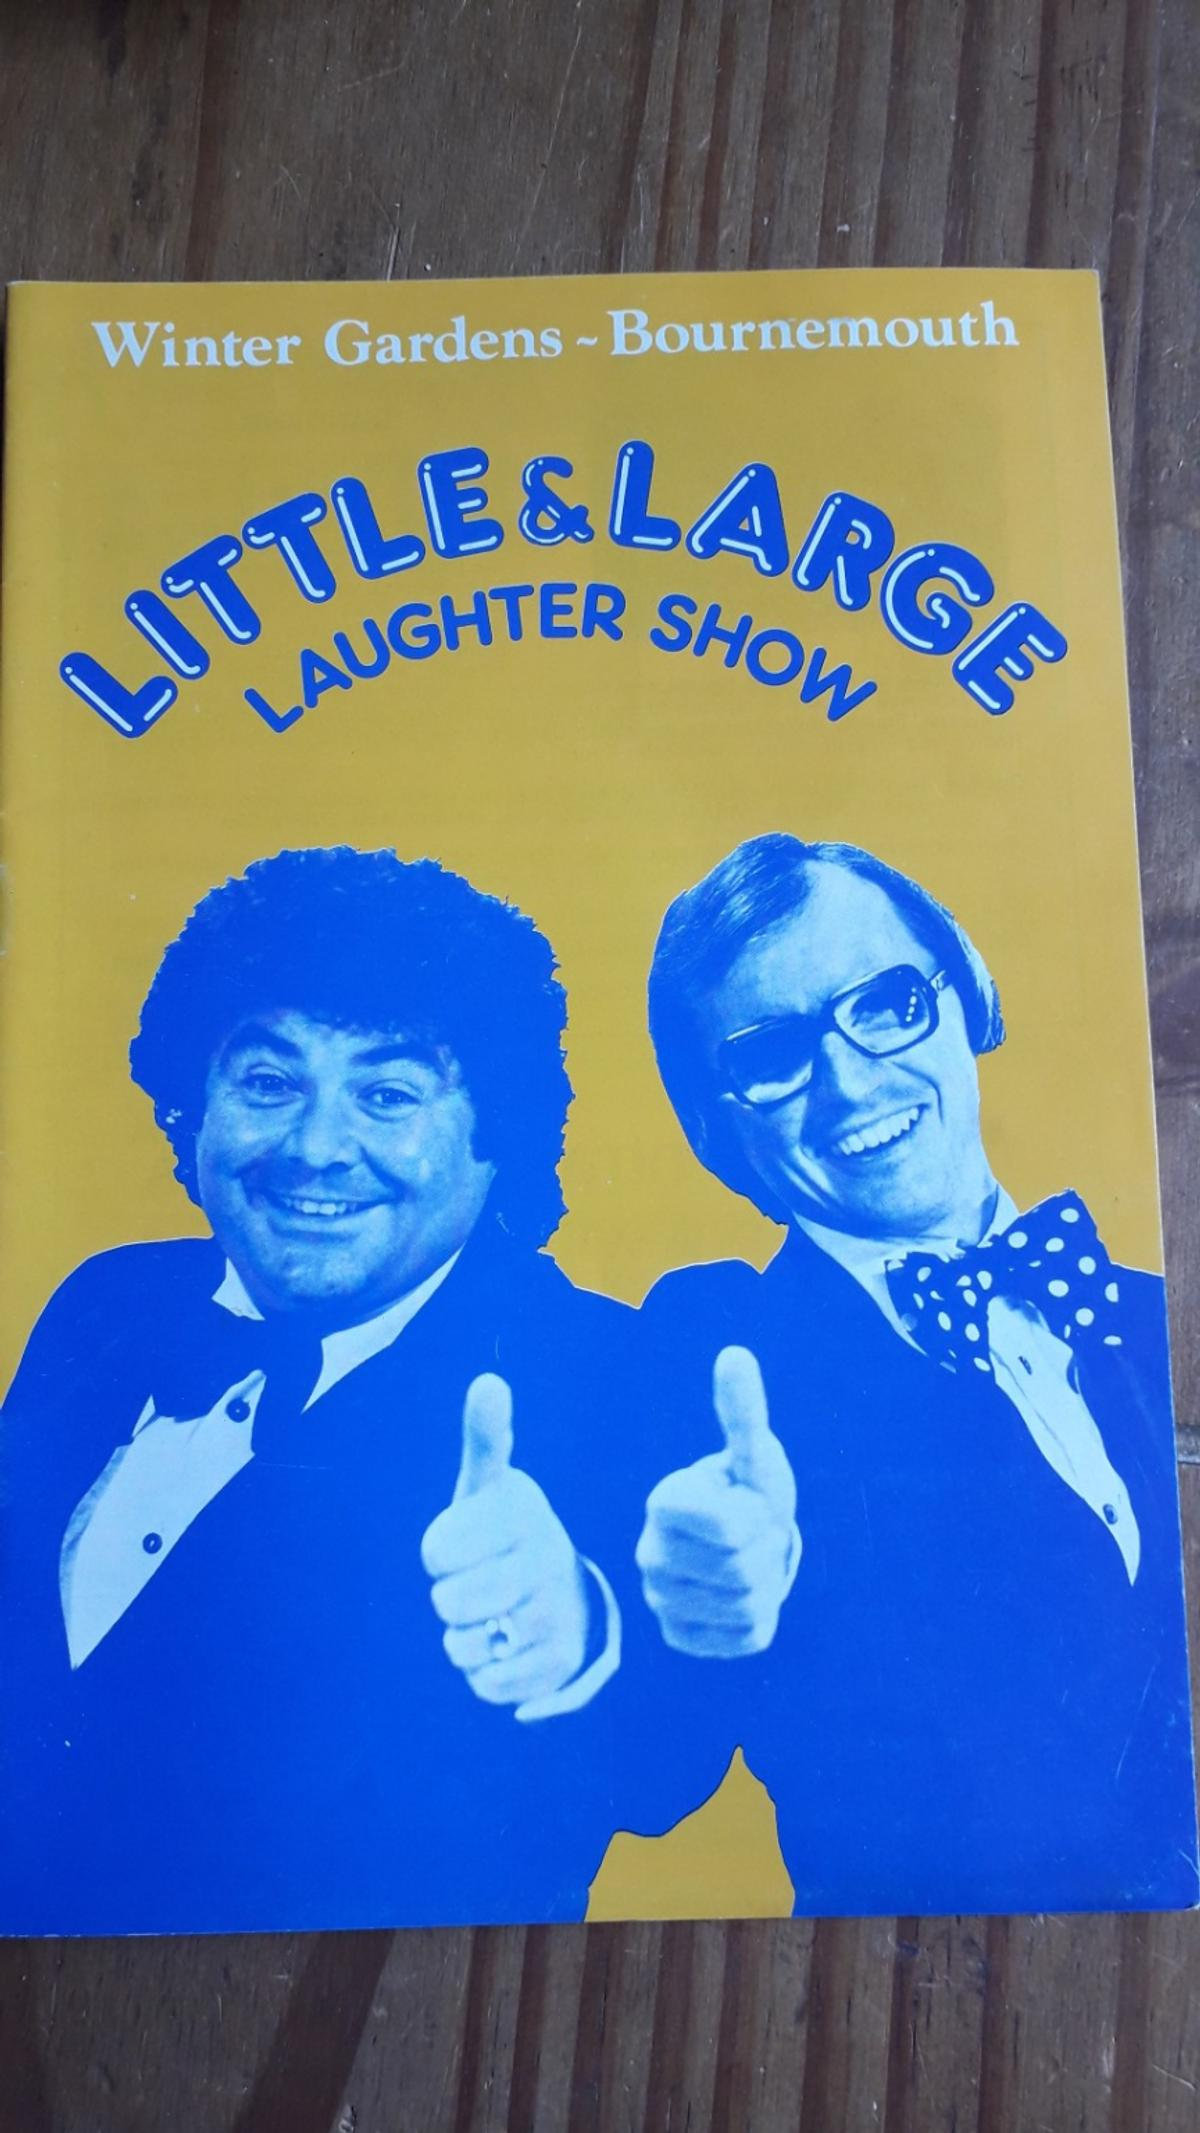 here is Little&Large laughter show 1980 signed by them both in good condition came from a auction where I won 200 programmes ect.  POST ONLY DUE TO VIRUS OUTBREAK contact for price  payment through paypal and through friends and family if you dont I will return money back to you